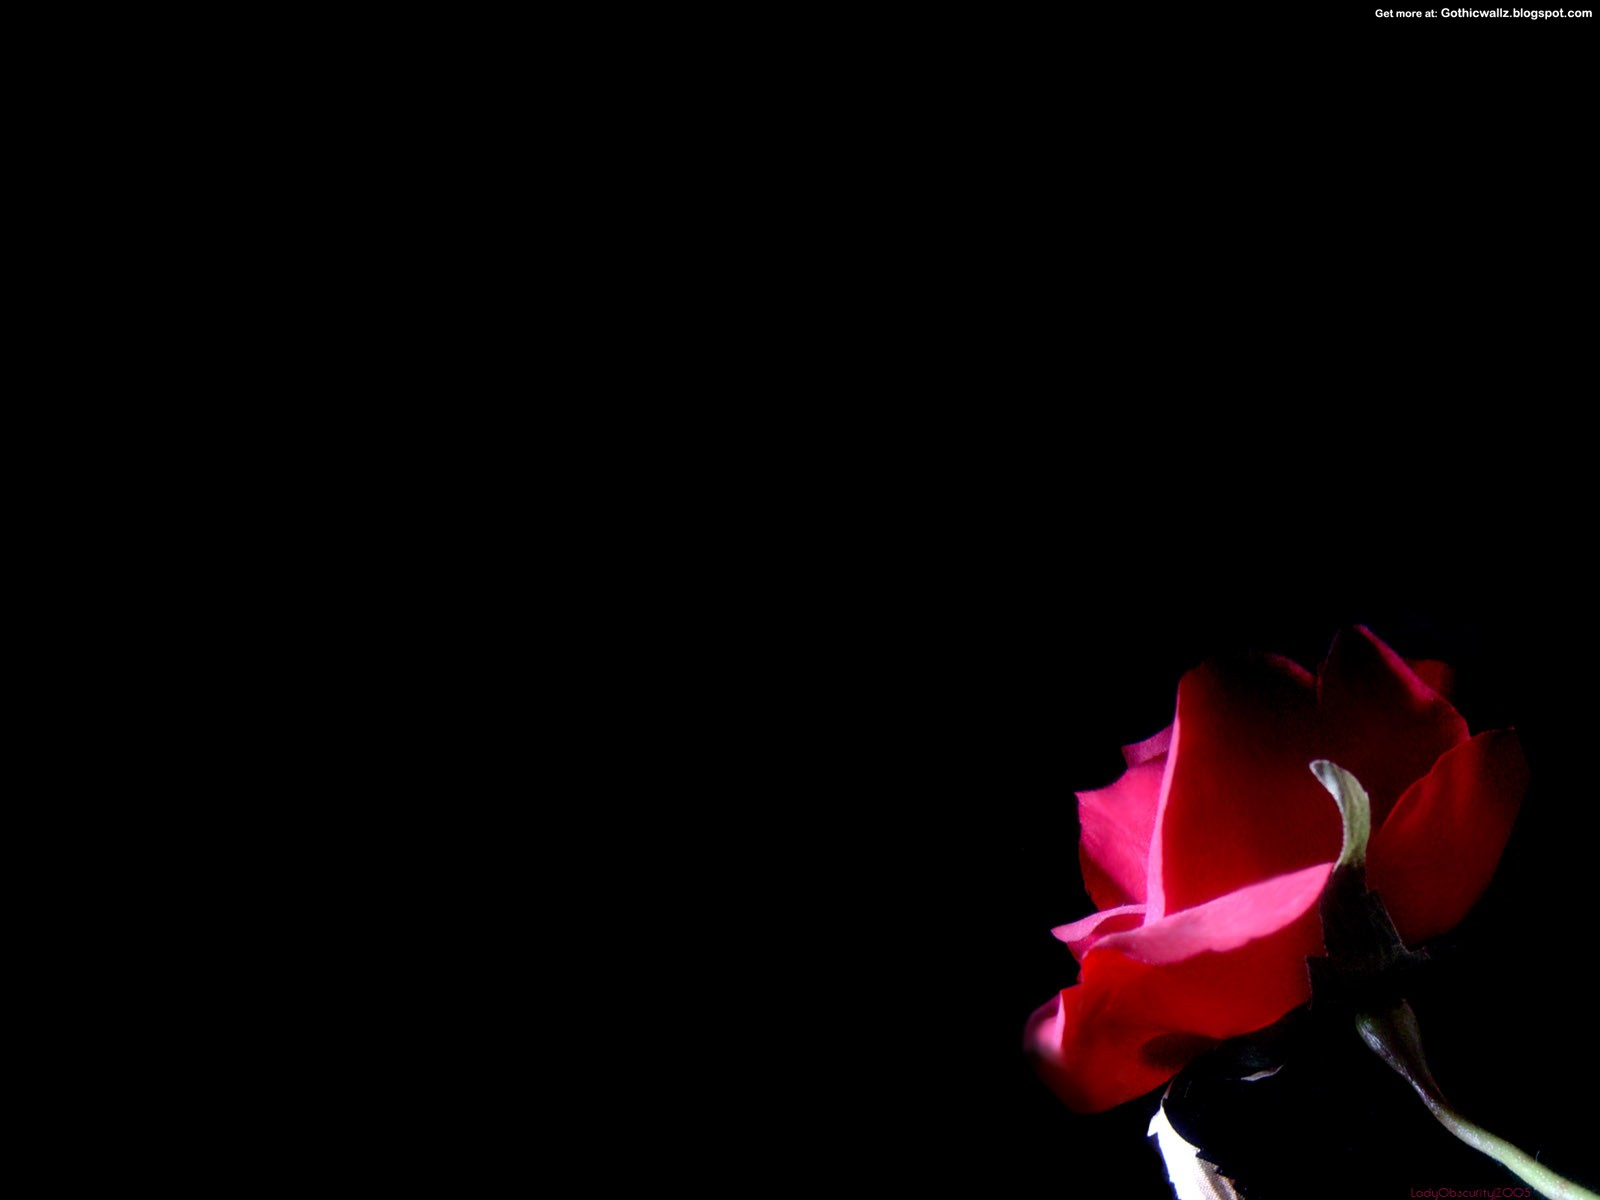 Gothic Rose 2   Dark Gothic Wallpapers   FREE Gothic Wallpaper   Dark 1600x1200